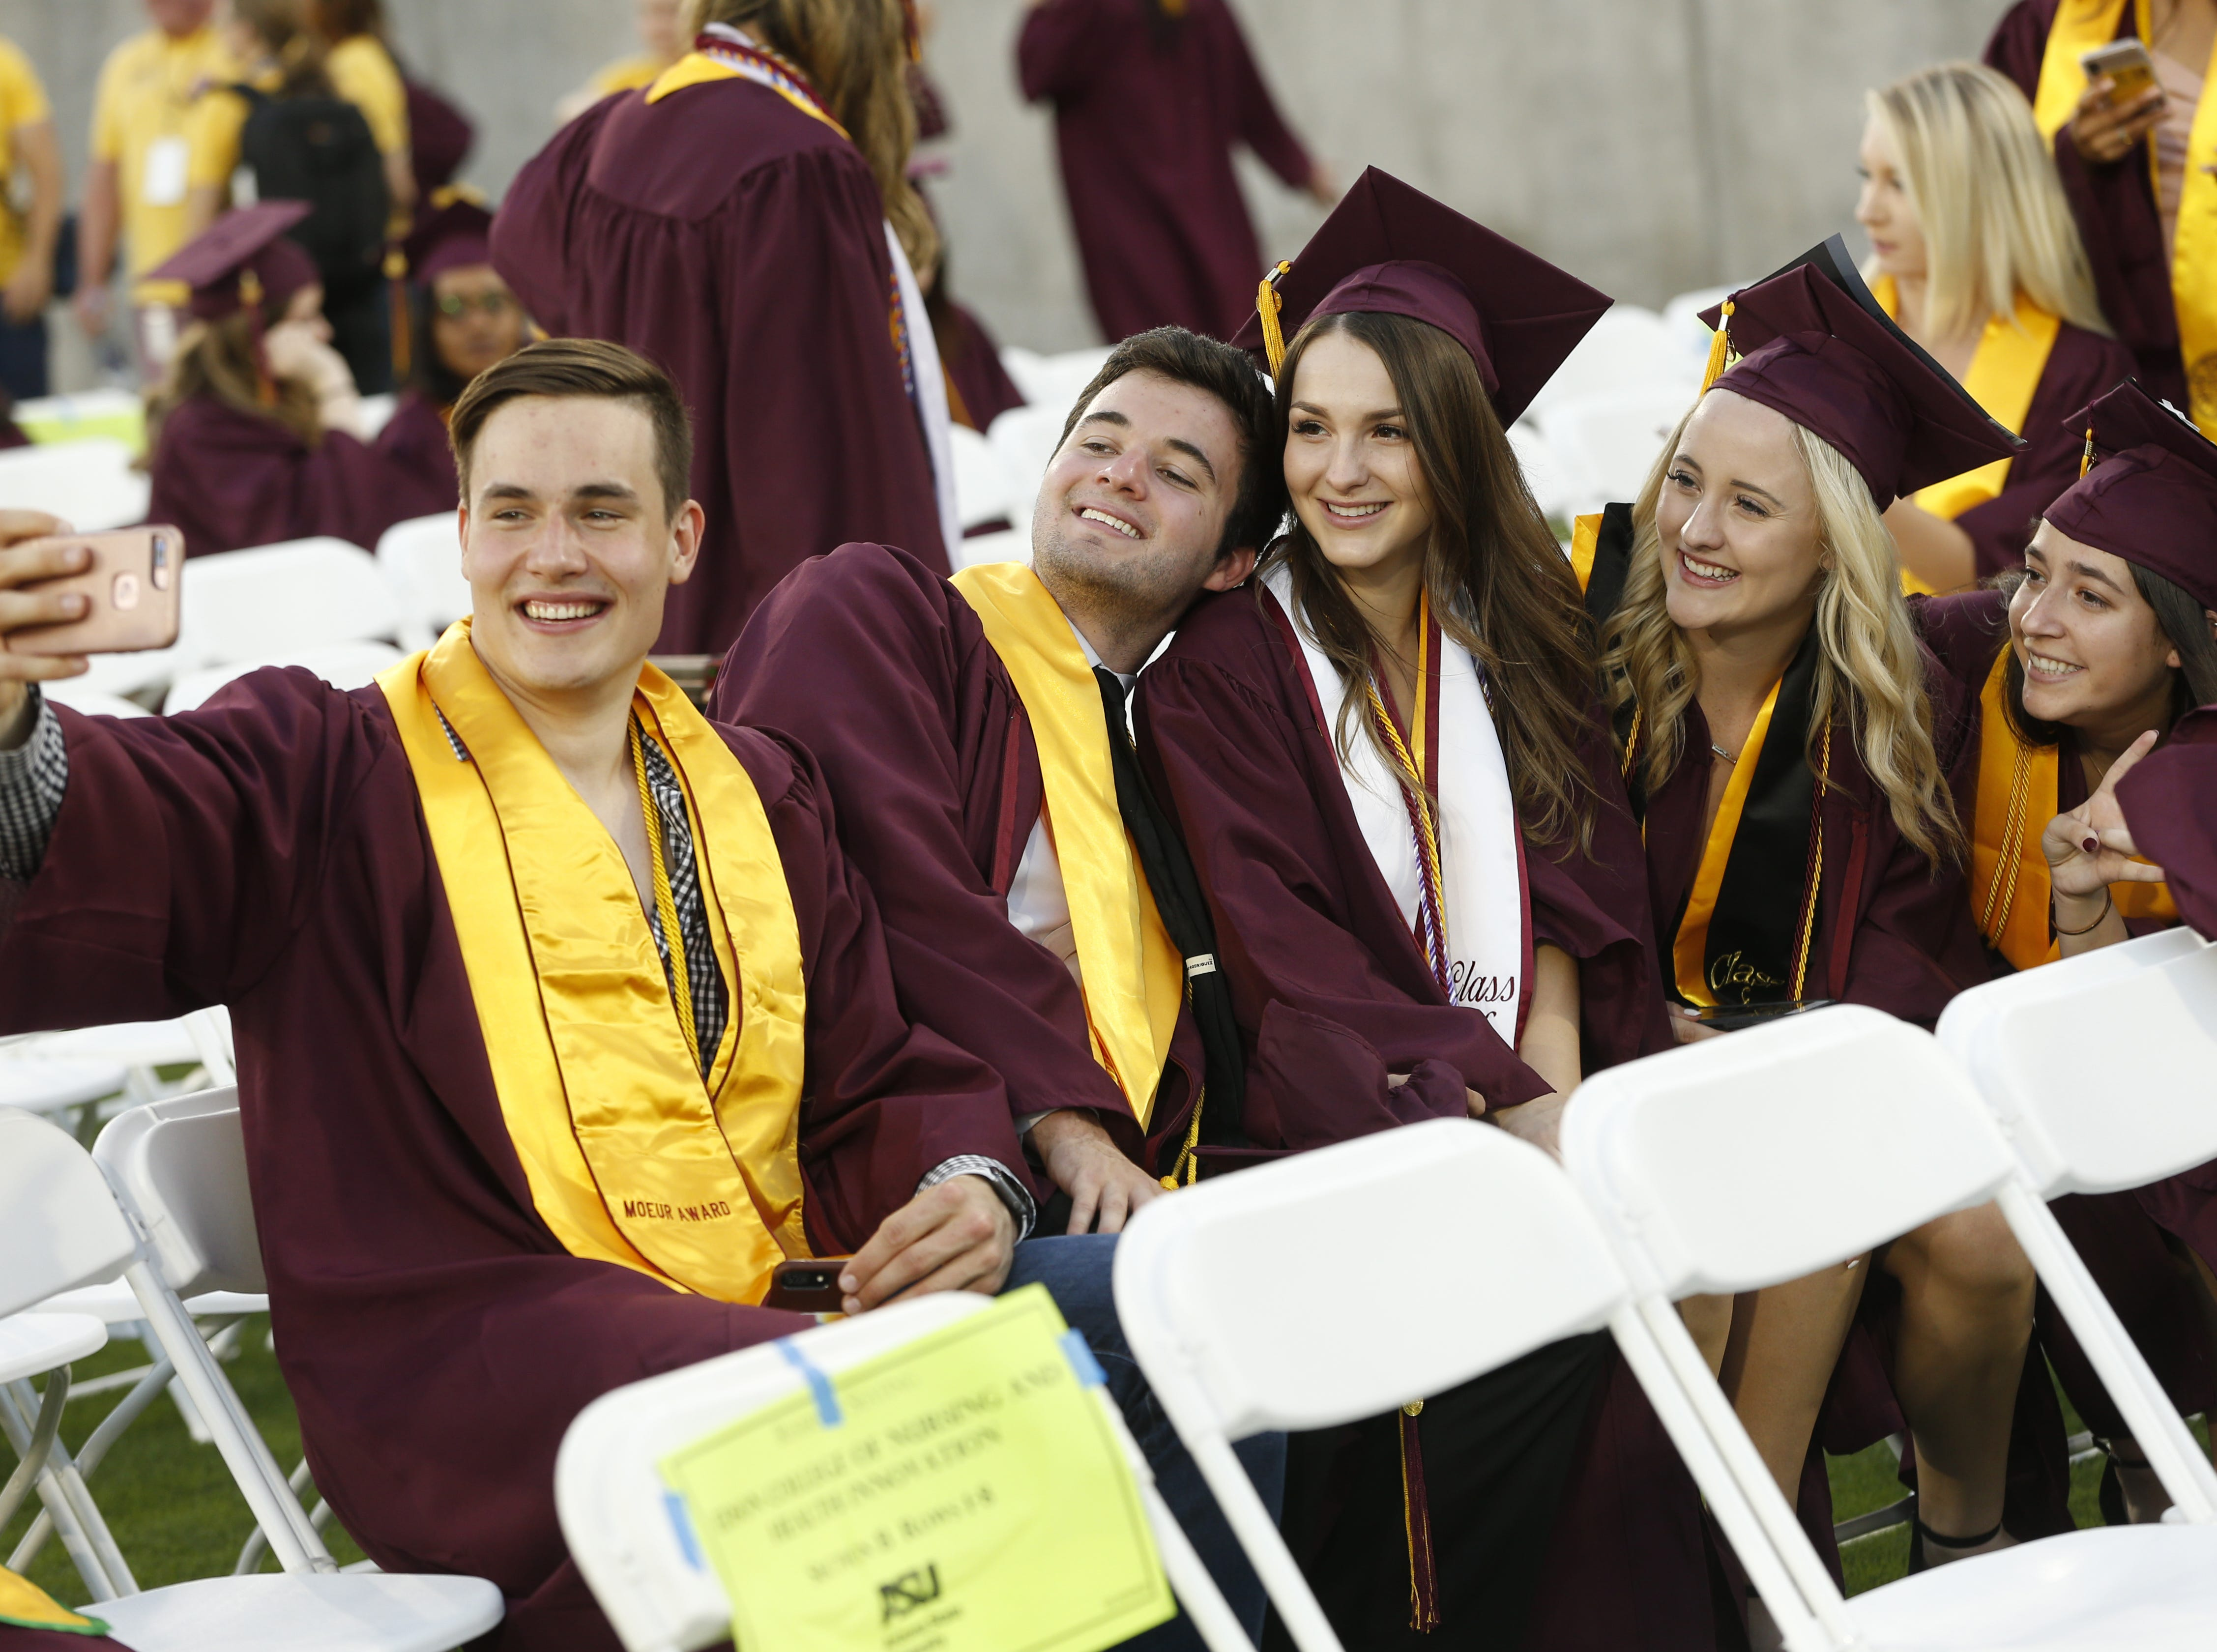 ASU graduates take selfies before ASU's Undergraduate Commencement at Sun Devil Stadium in Tempe, Ariz. on May 6, 2019.